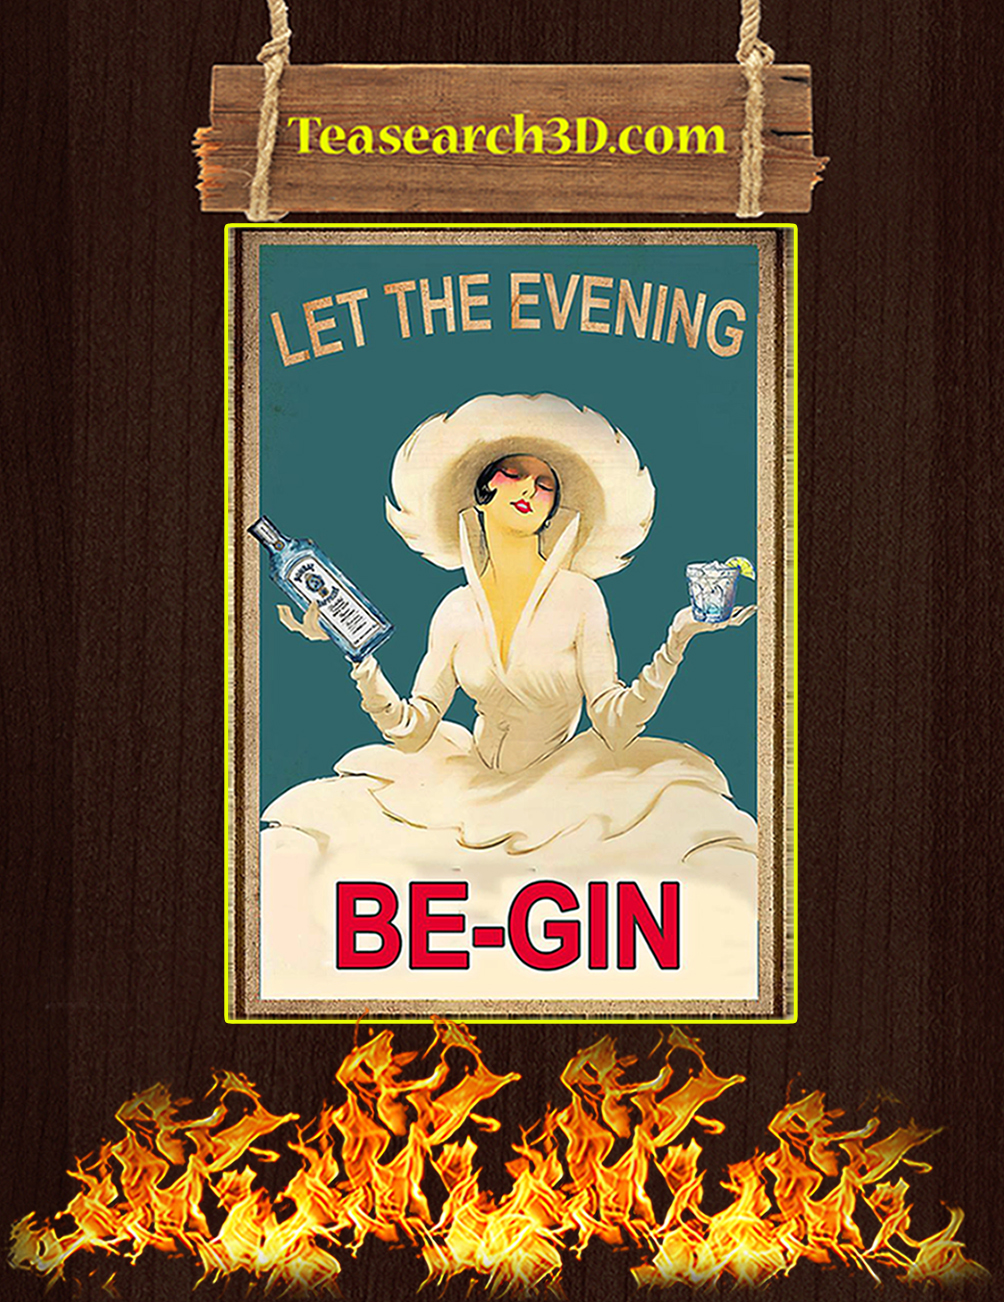 Let the evening be-gin poster